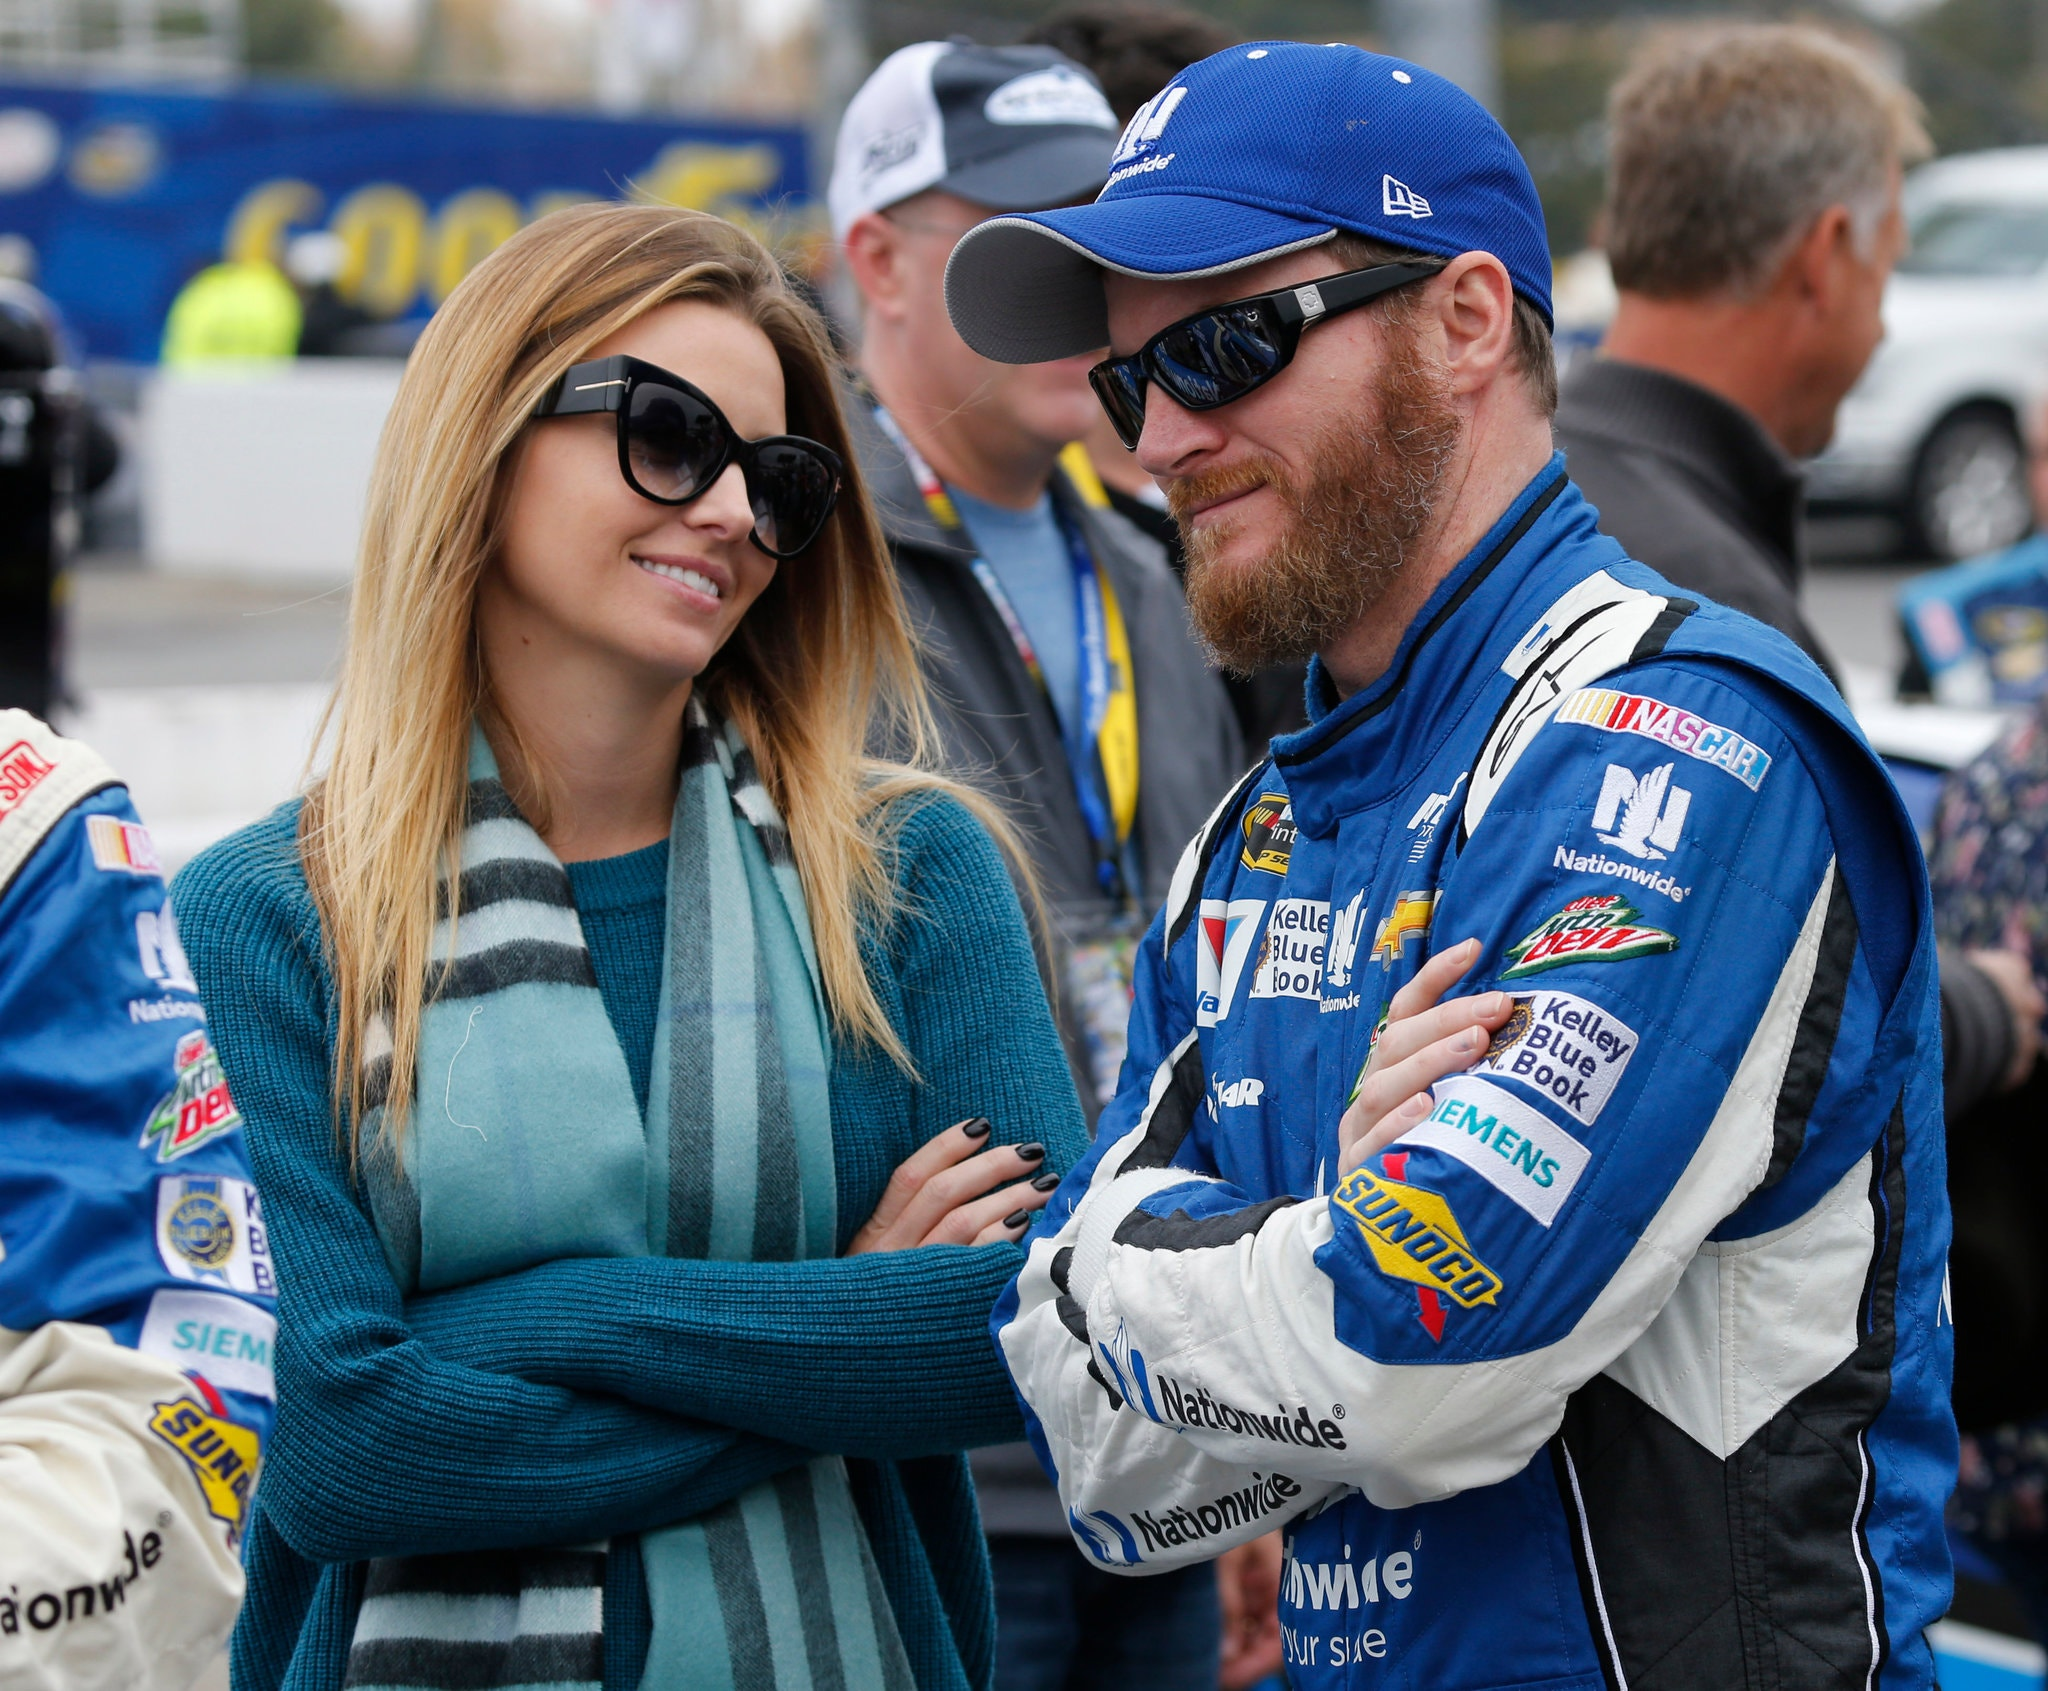 Dale Earnhardt Jr. and Family Are safe After Plane Crash  The plane, with Earnhardt, his wife and their young daughter on board, rolled off a runway near Bristol, Tenn., where NASCAR has a race this weekend.